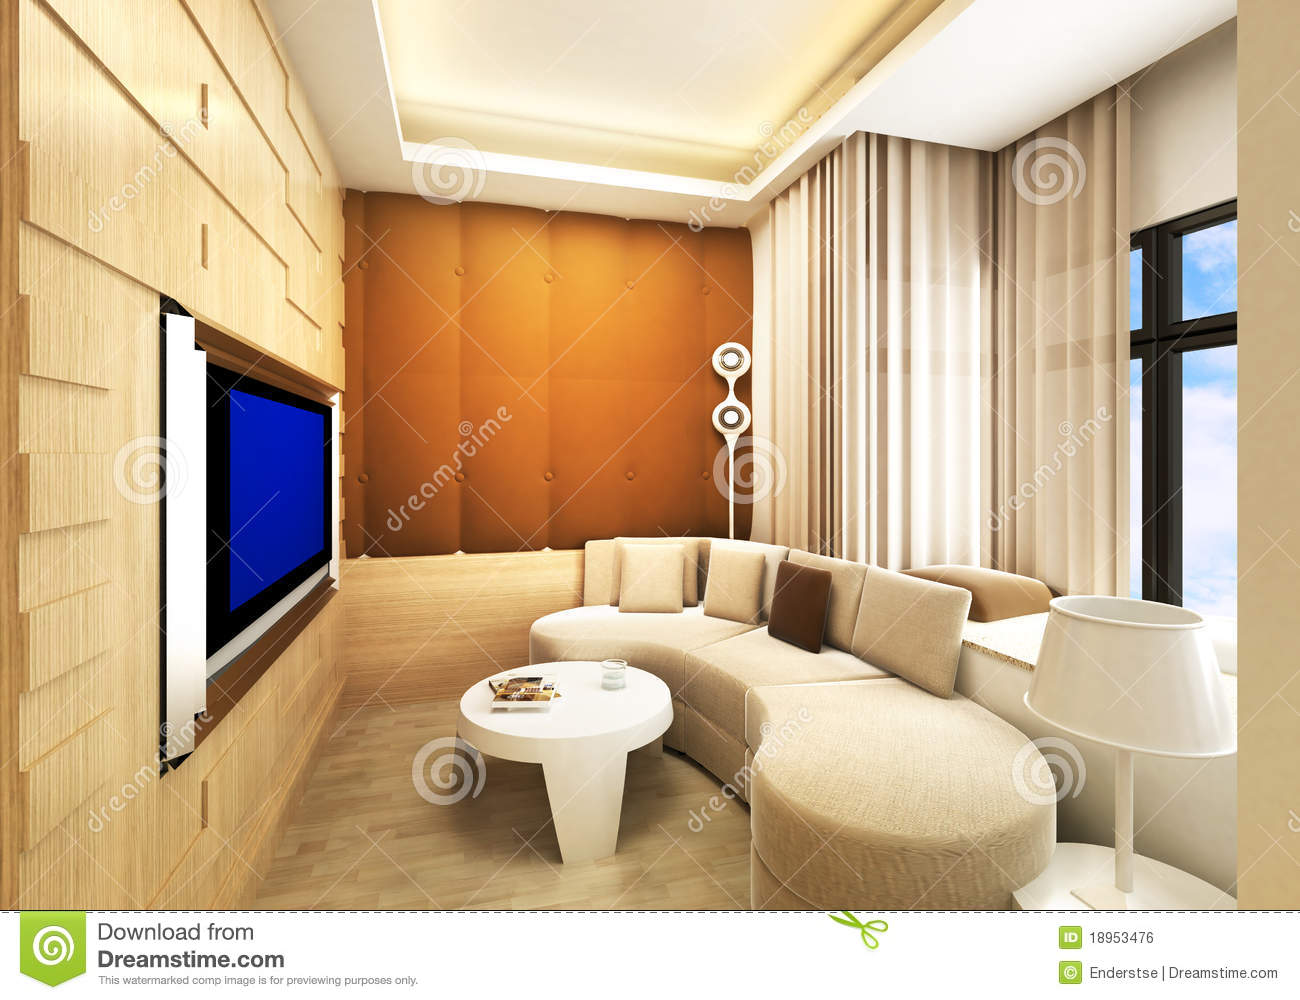 Living Room Karaoke Room Royalty Free Stock Image Image 18953476